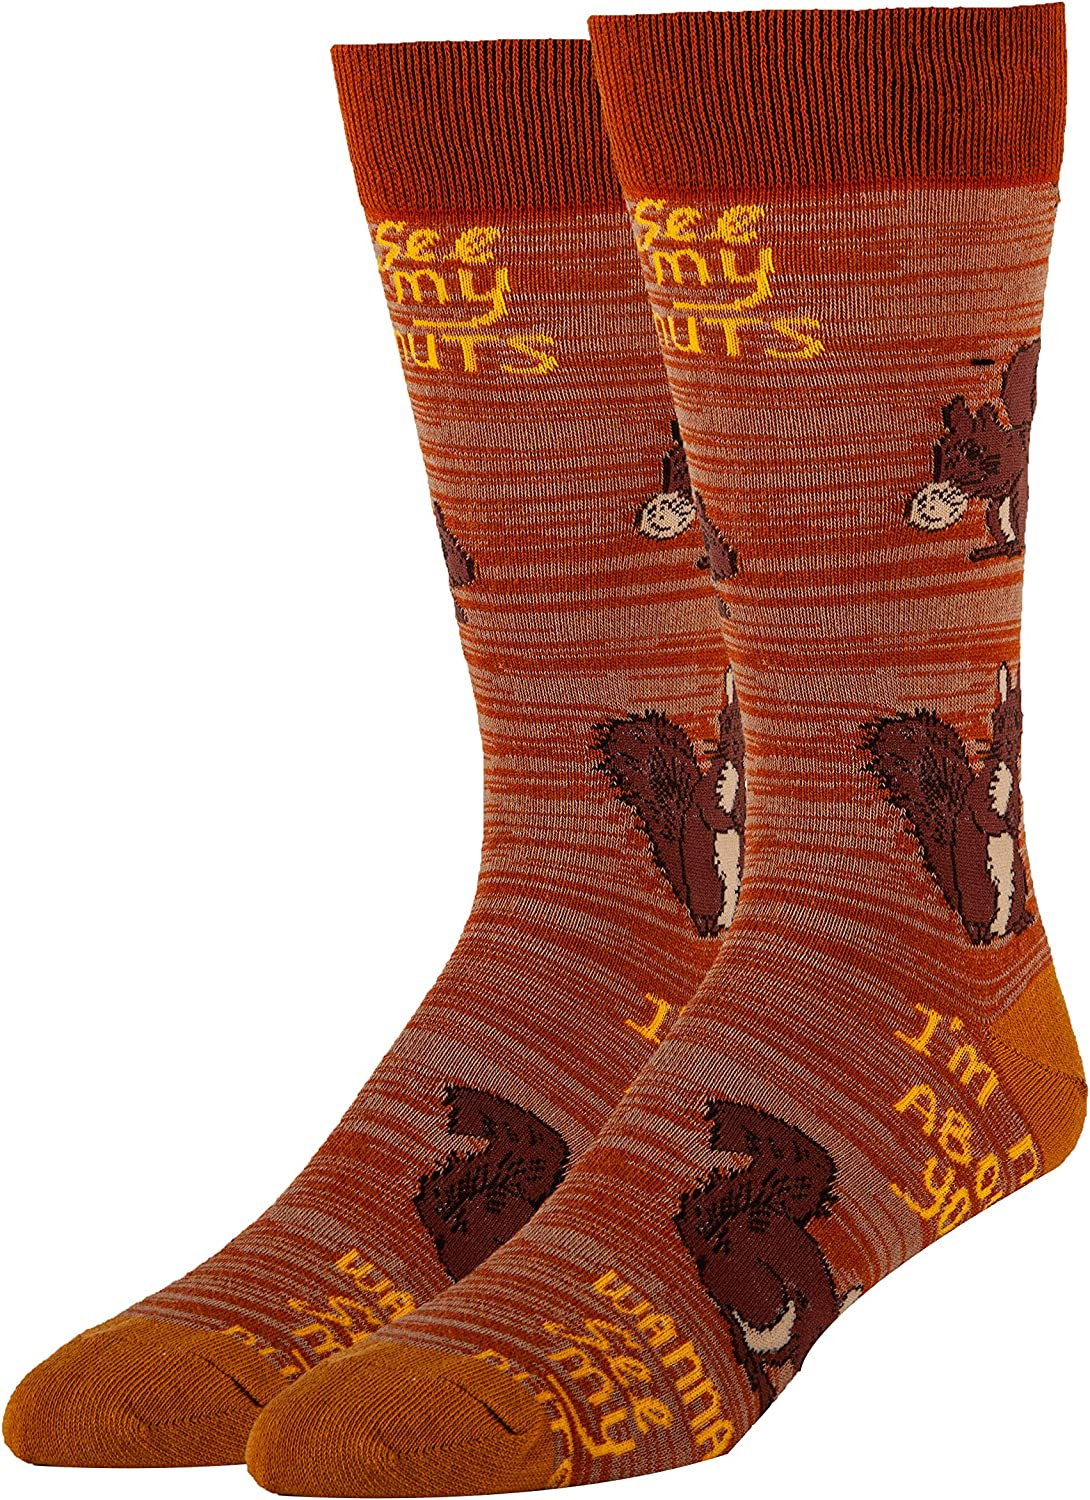 Men's Outlet sale feature Novelty Crew Socks for Adult Oooh Yeah Funny Large discharge sale So Humor Fun